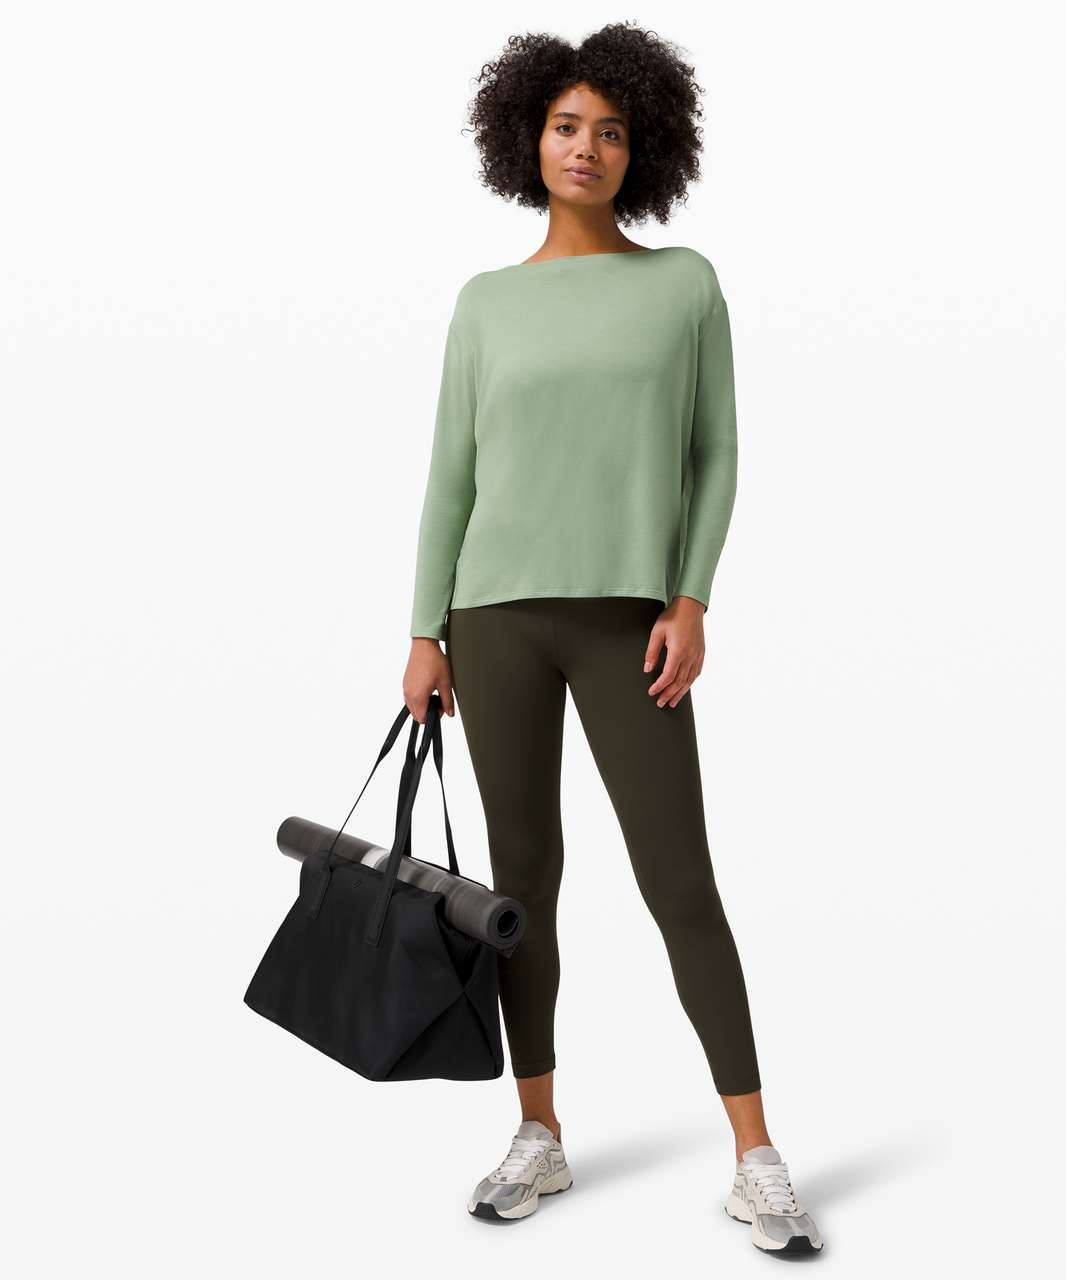 Lululemon Back In Action Long Sleeve - Willow Green